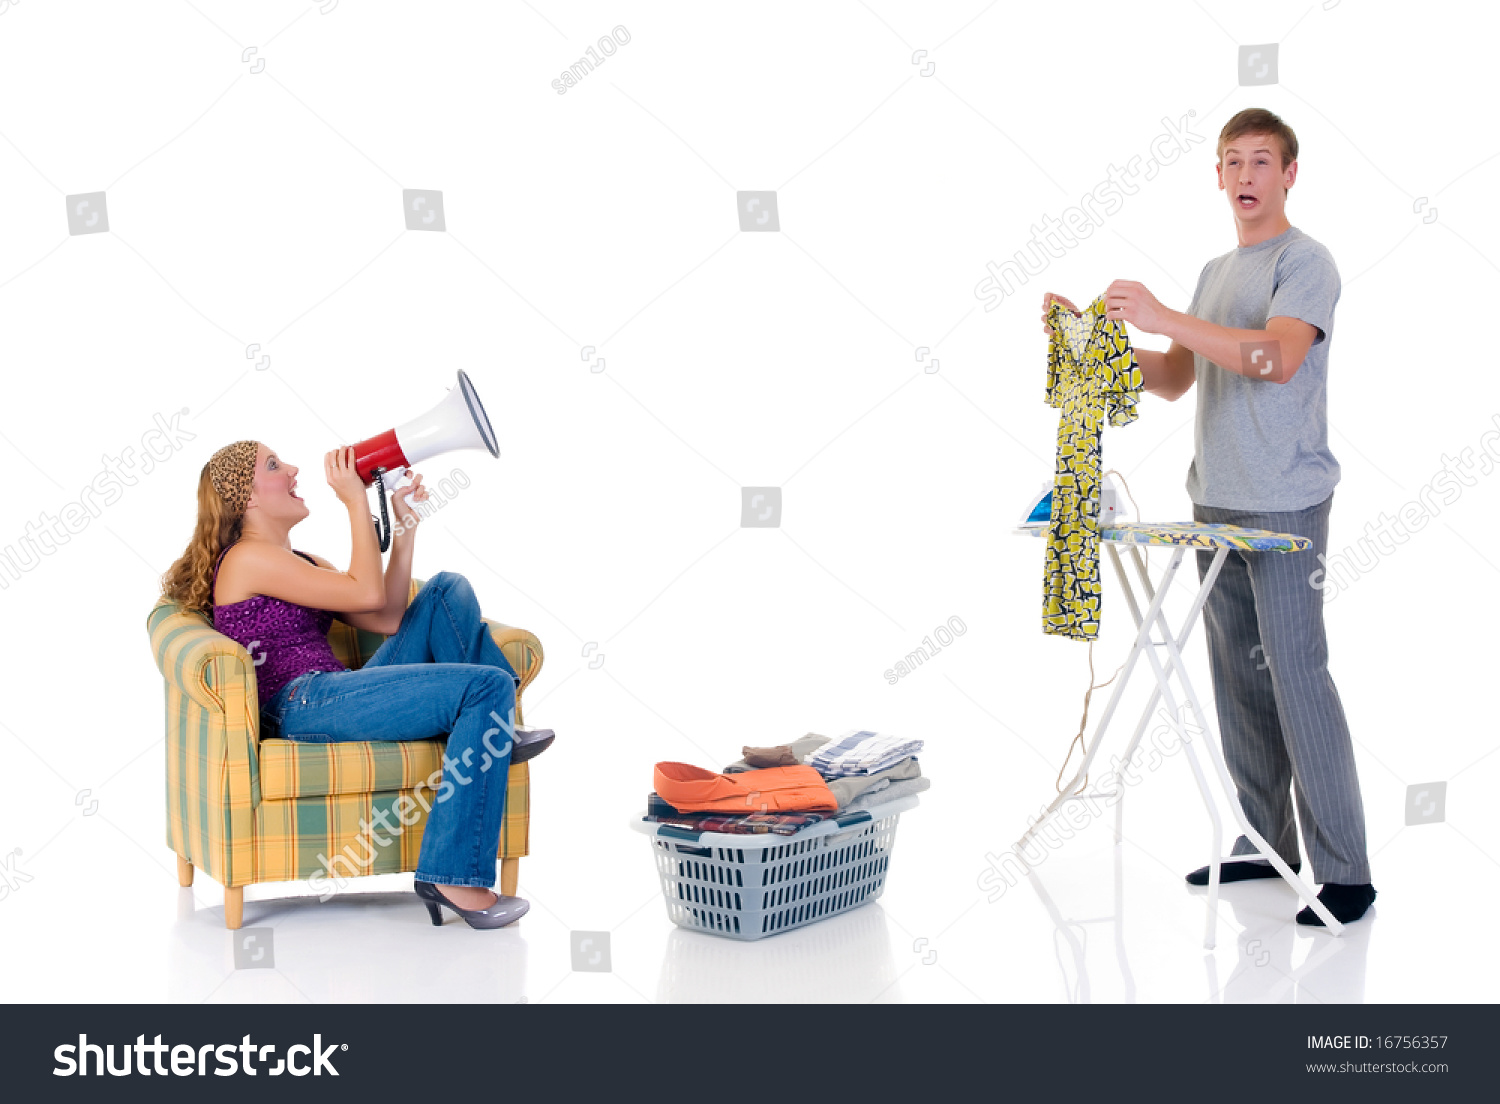 0d1e4bb96a Young bossy woman shouting with megaphone to husband ironing clothing.  Studio